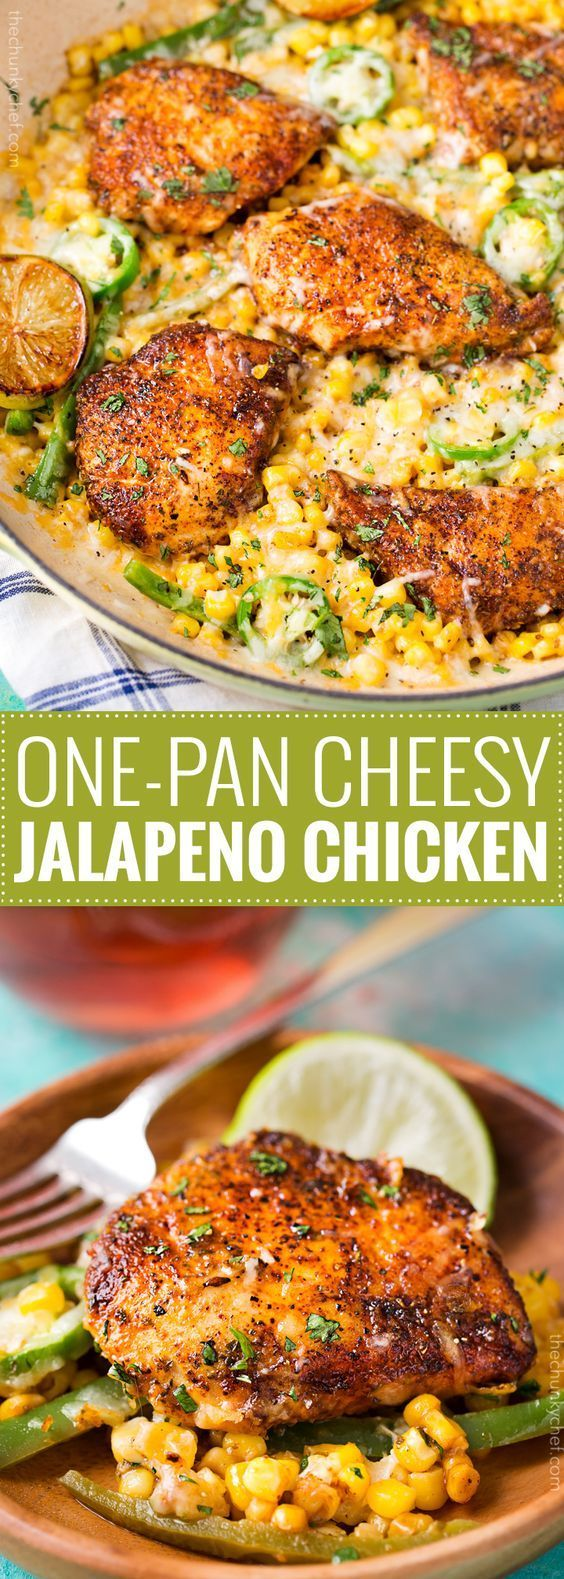 One Pan Cheesy Jalapeño Chicken - An easy weeknight meal, bursting with flavor, smothered in melty cheese, and on your table in 20 minutes!